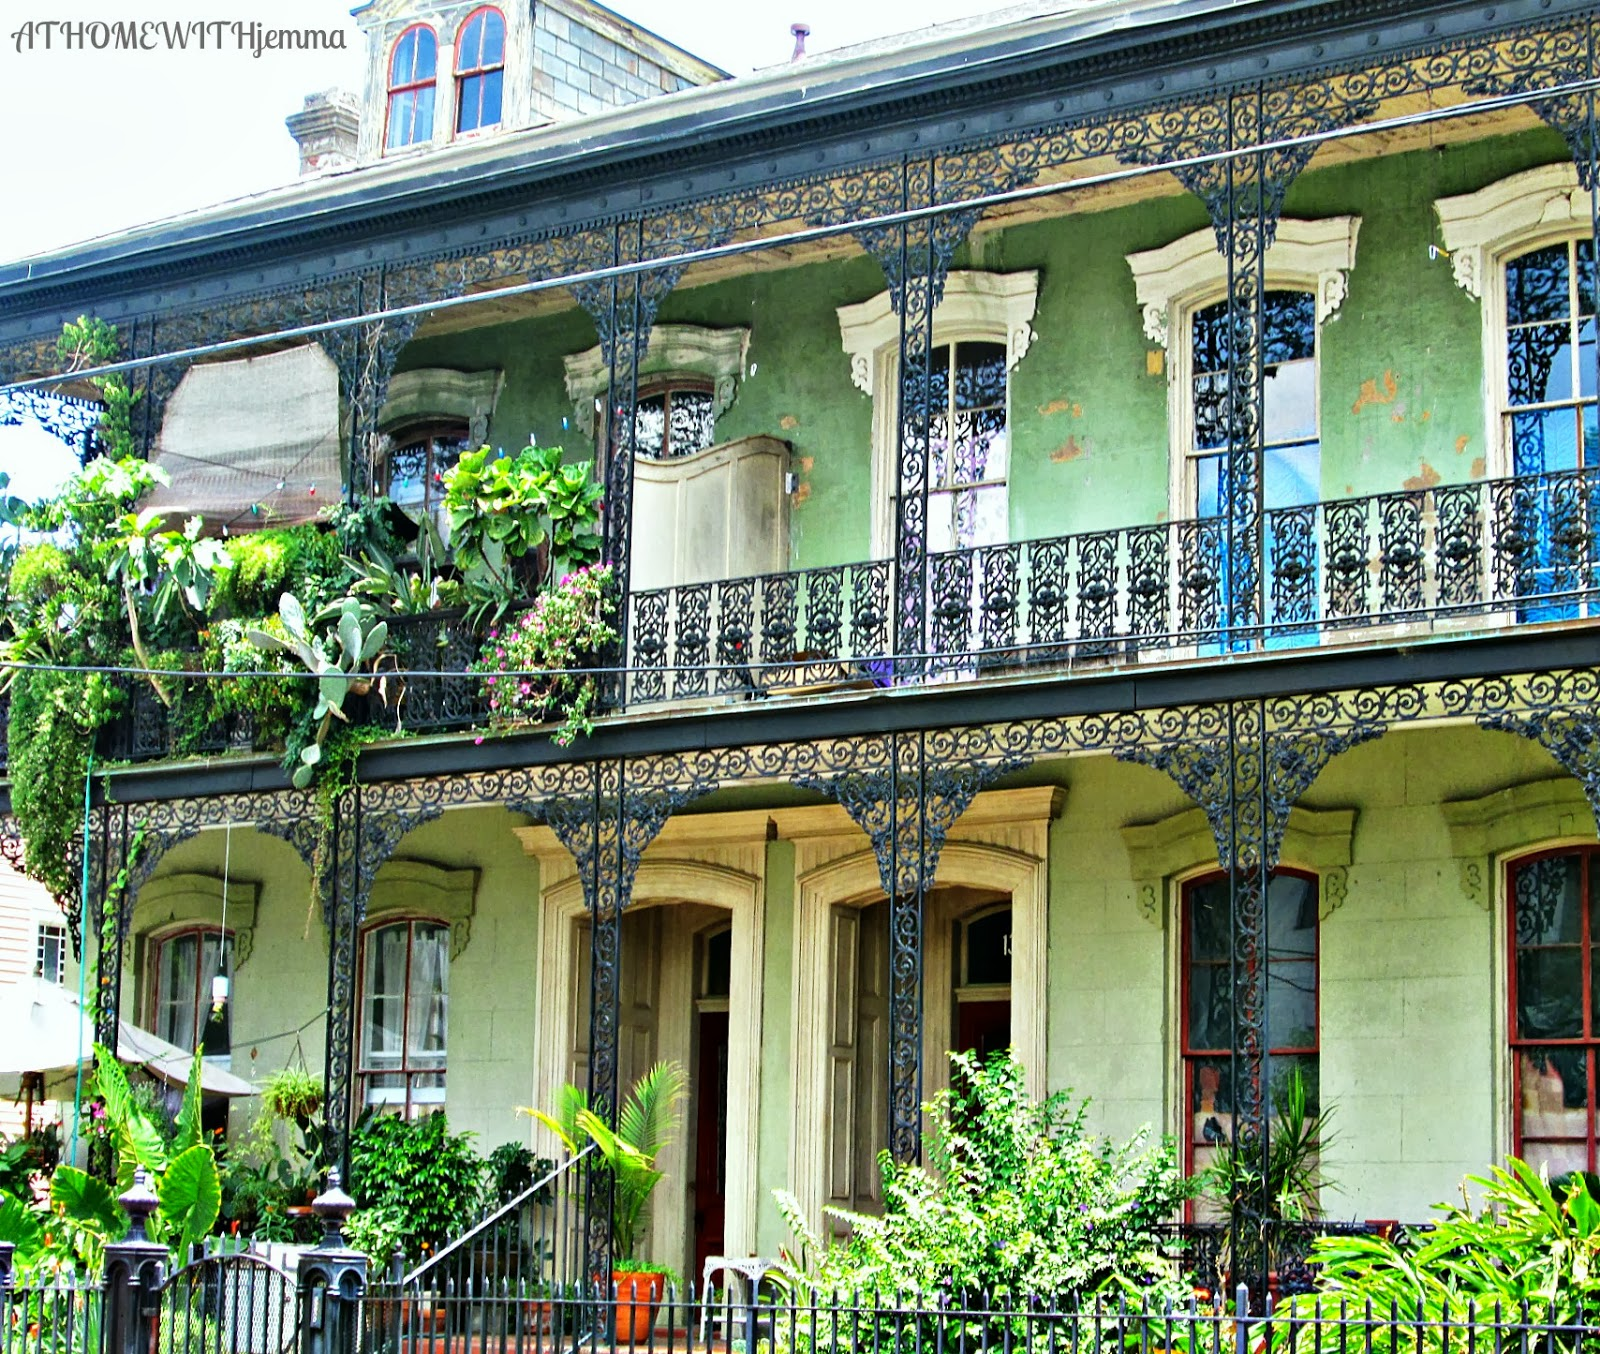 Inspirational Thursday New Orleans Garden District At Home With Jemma